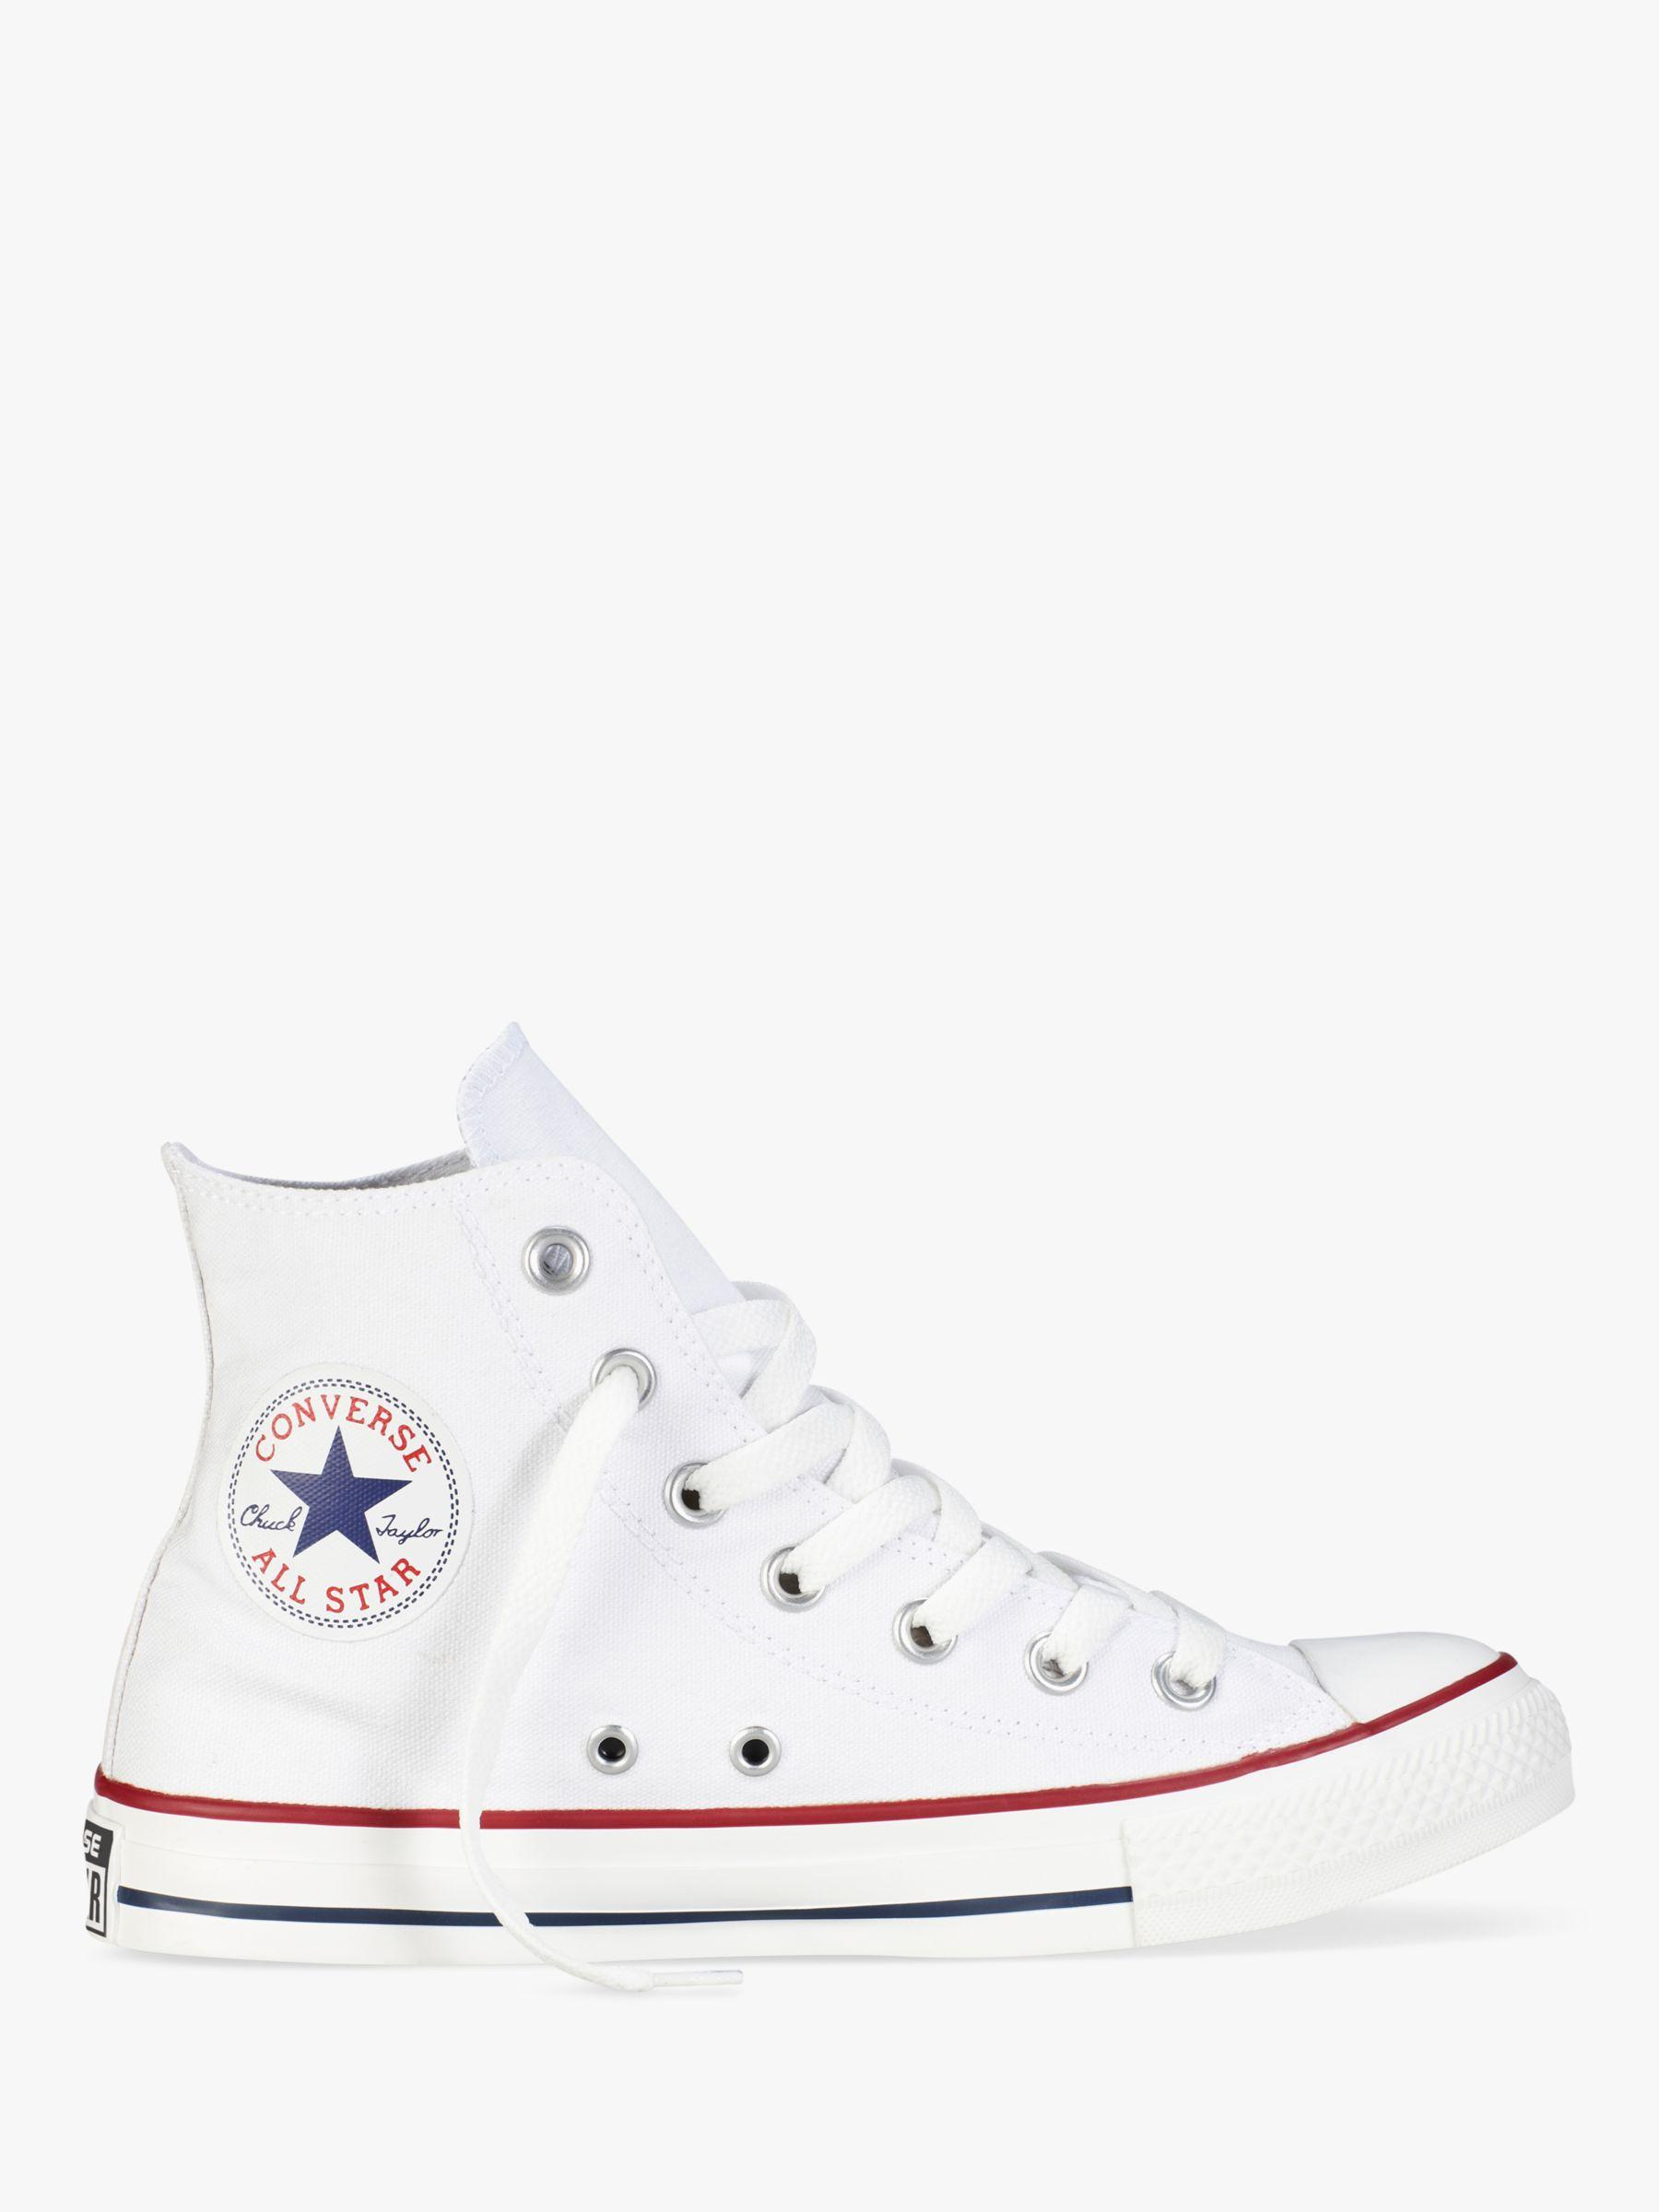 70d07753c86125 Converse Chuck Taylor All Star Canvas High-top Trainers in White - Lyst